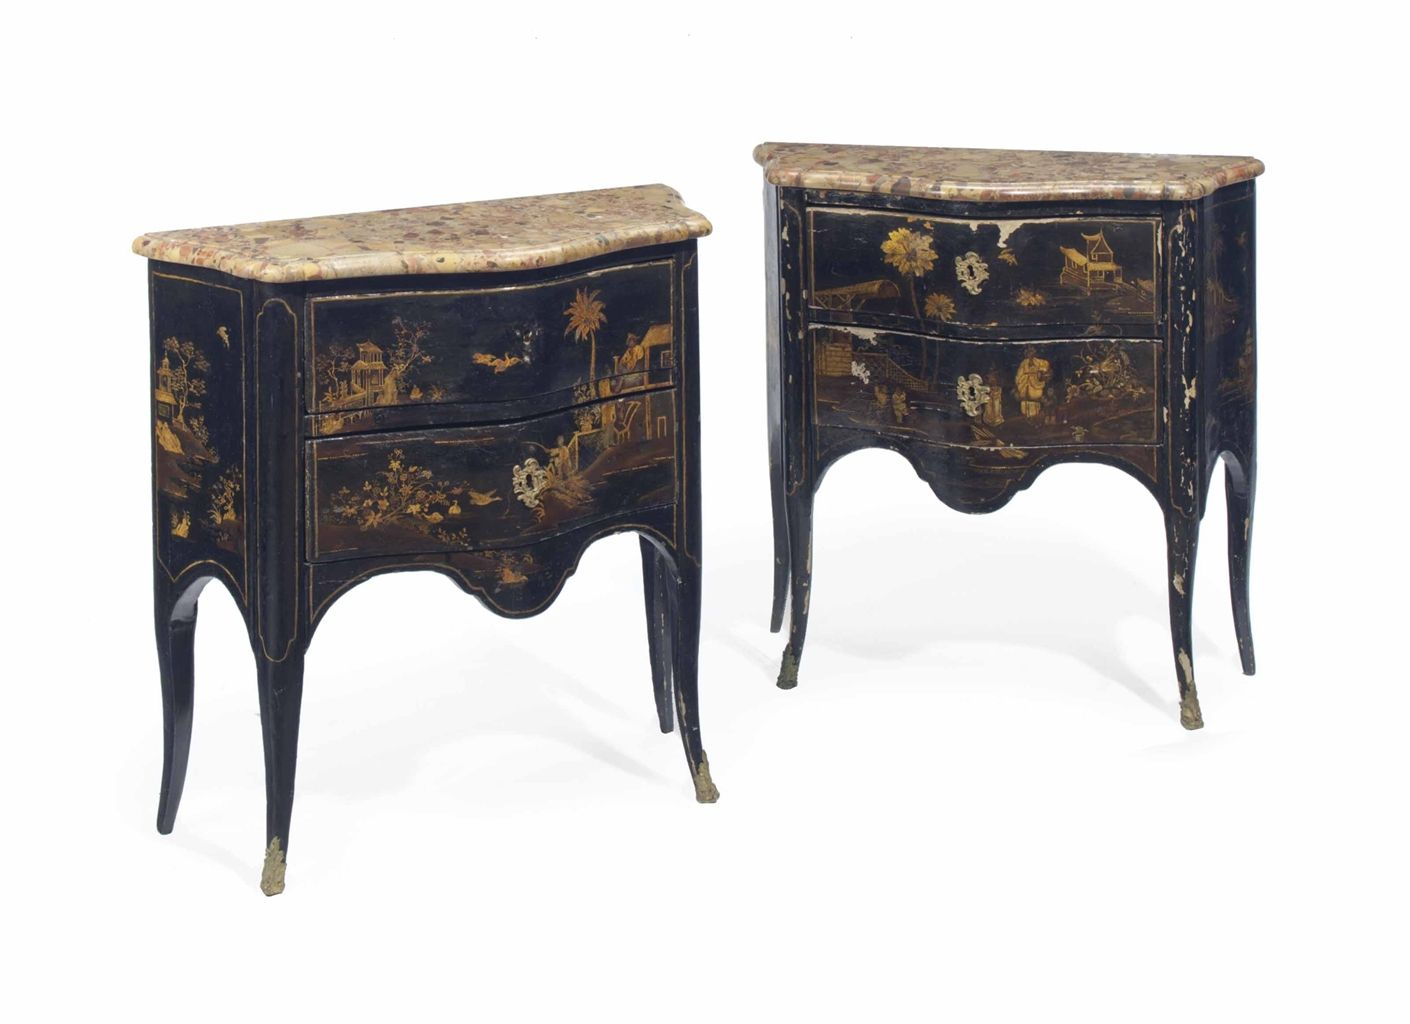 Pin by lindajane keefer on furniture styles antique for Modern furniture names